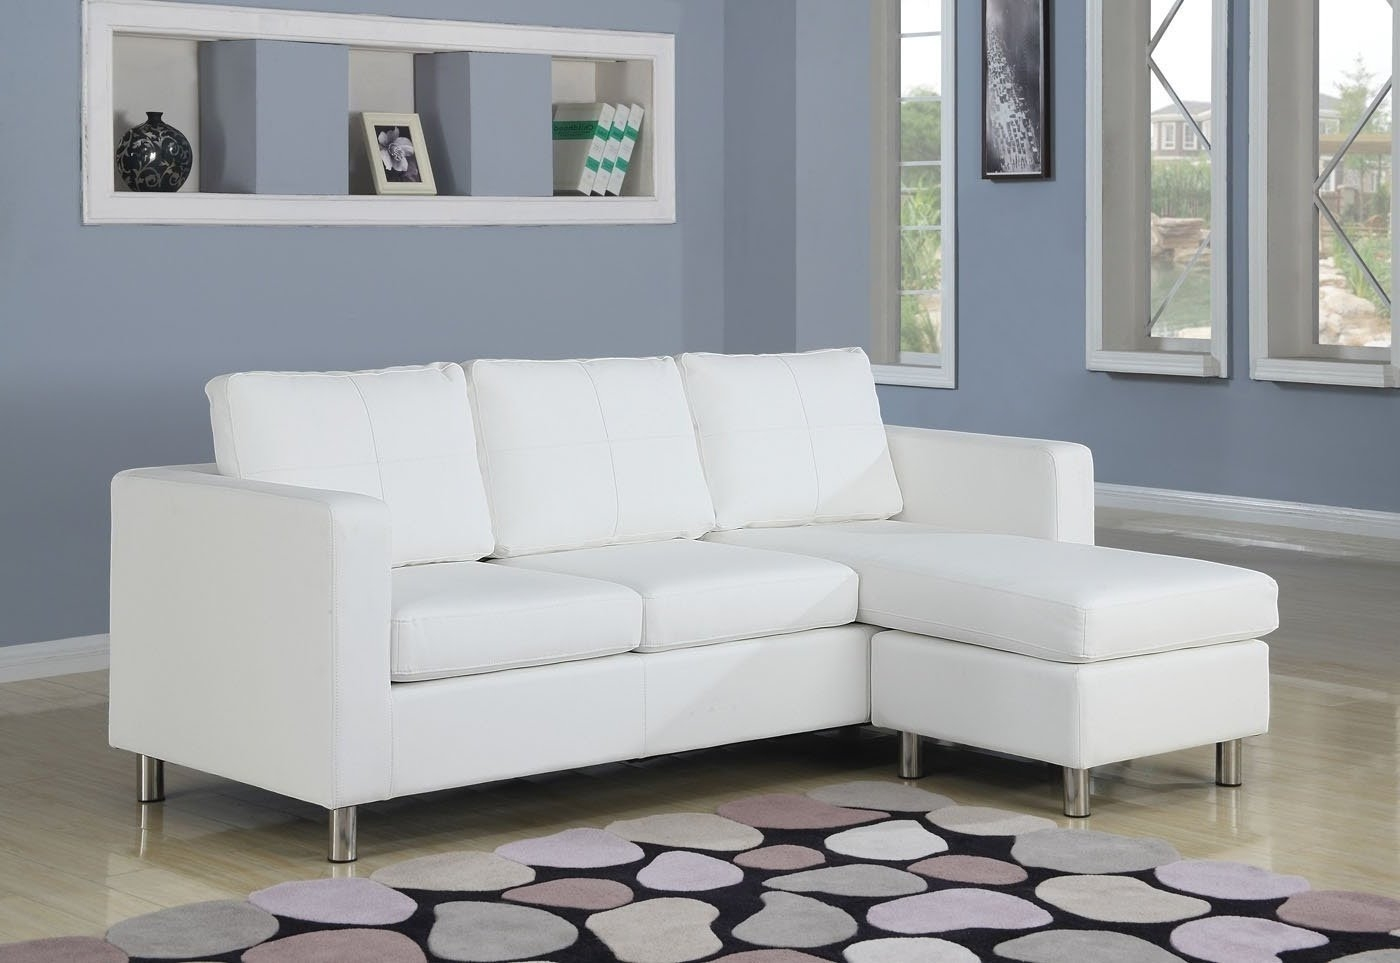 Sofa Cool Sectional Sleeper Sofa Small Spaces Decoration Ideas Pertaining To Cool Small Sofas (Image 13 of 15)